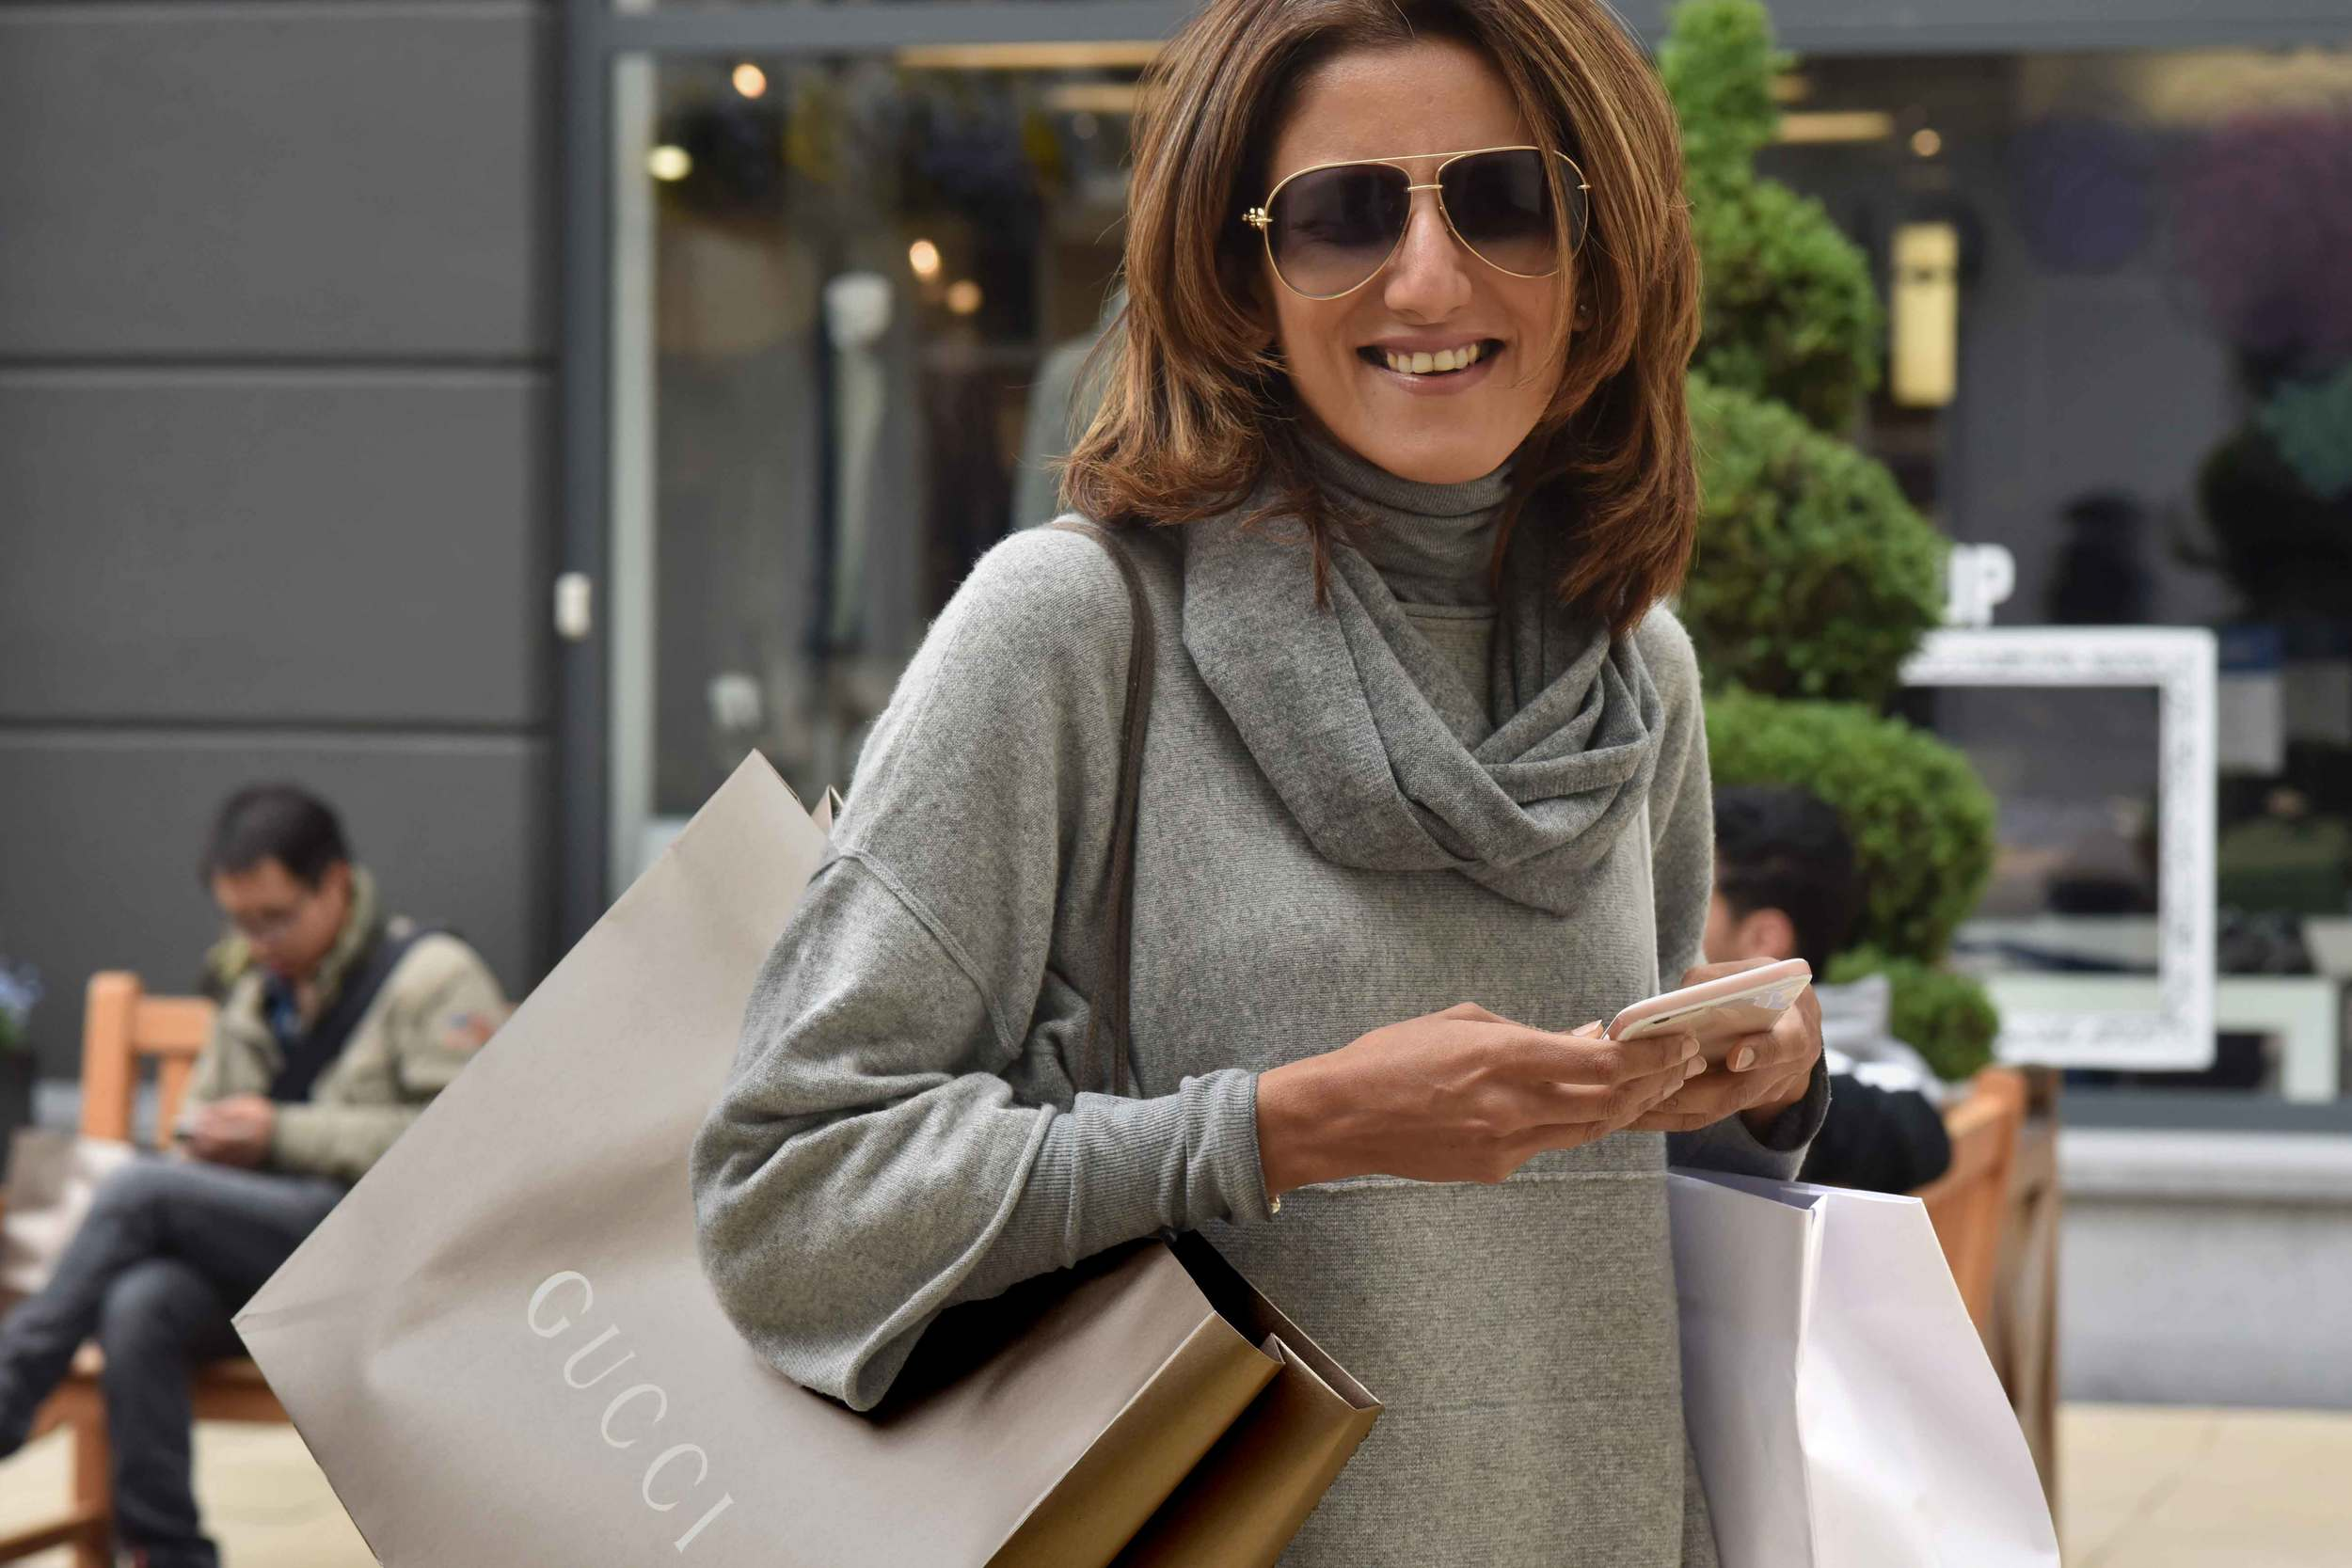 Gucci shopping bag,Jjill cashmere kimono sweater, Jill cashmere infinity scarf, Designer Outlet Roermond, Netherlands. Photo: Nicola Nolting, image©sourcingstyle.com